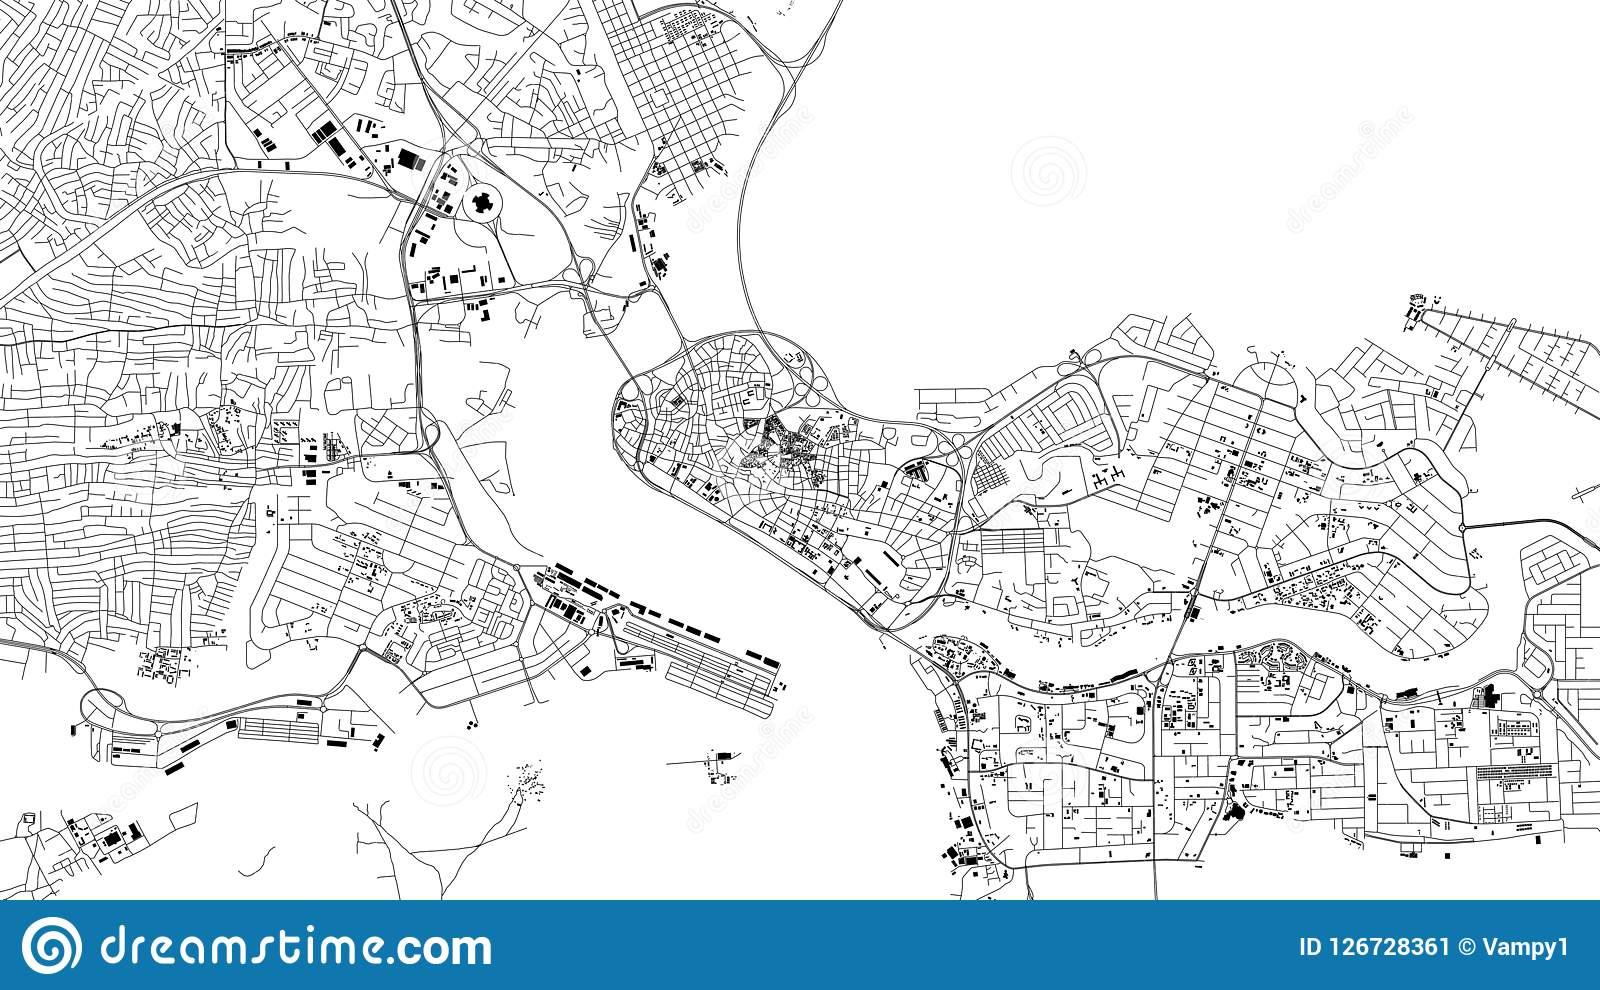 Lagos Map, Satellite View, City, Nigeria. Streets And House ... on space maps, radar maps, live maps, lake maps, types of maps, aerial maps, street maps, military maps, temperature maps, digital maps, pomorskie poland maps, msn maps, dvd maps, earth maps, topographical maps, internet maps, weather maps, gis maps, sites atlas thematic maps, topographic maps,